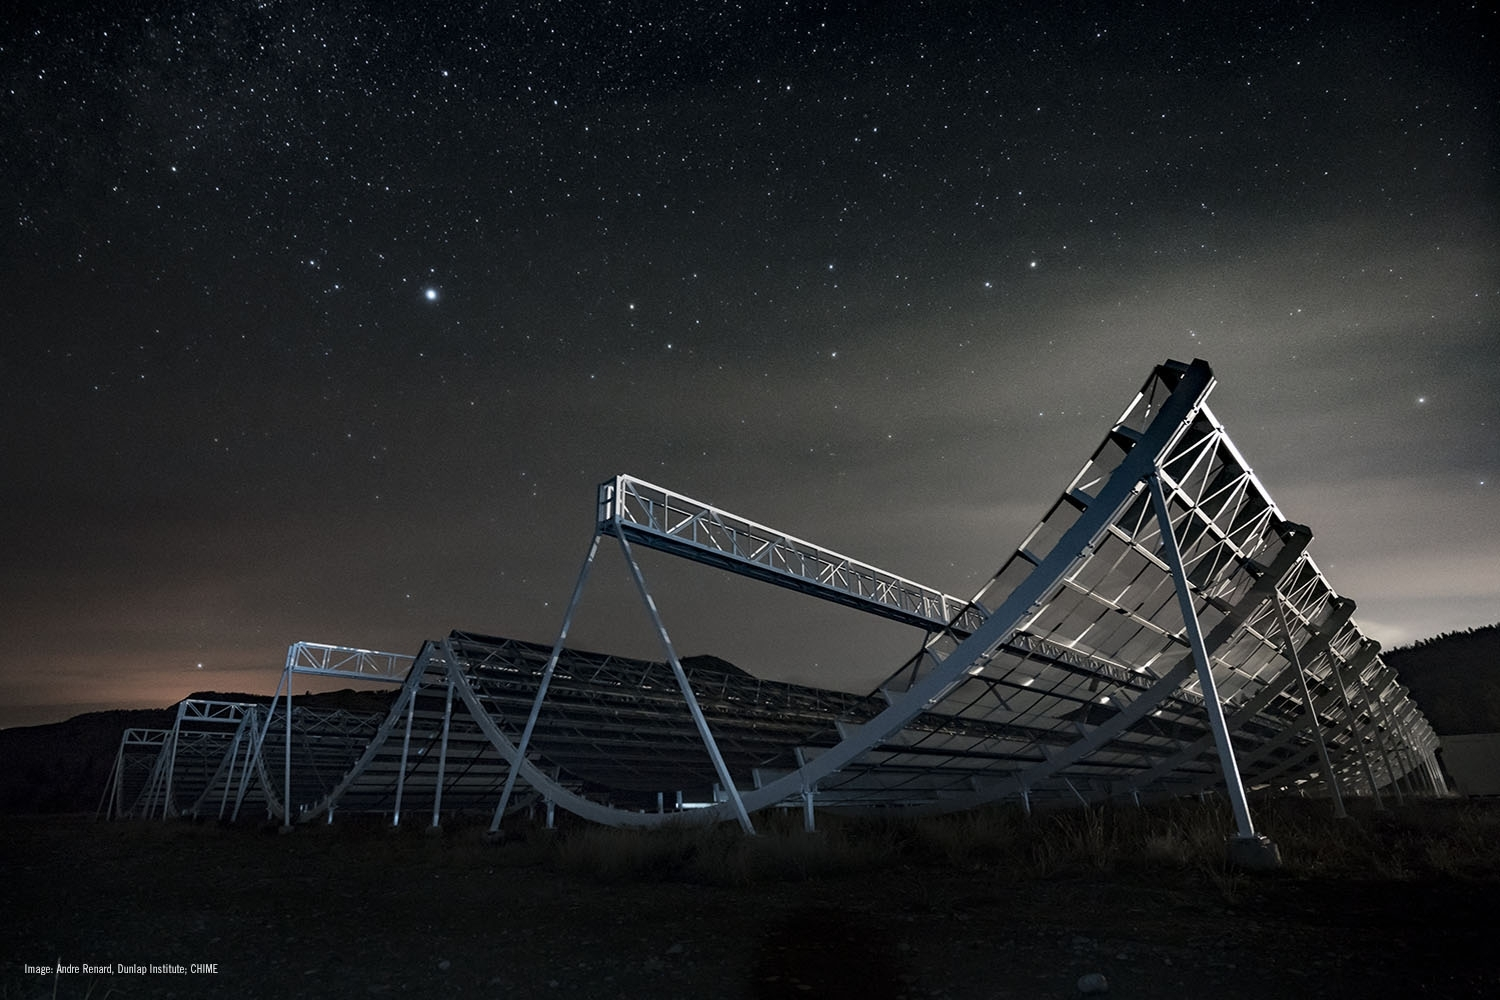 Canada's largest radio telescope Chime starts mapping the universe